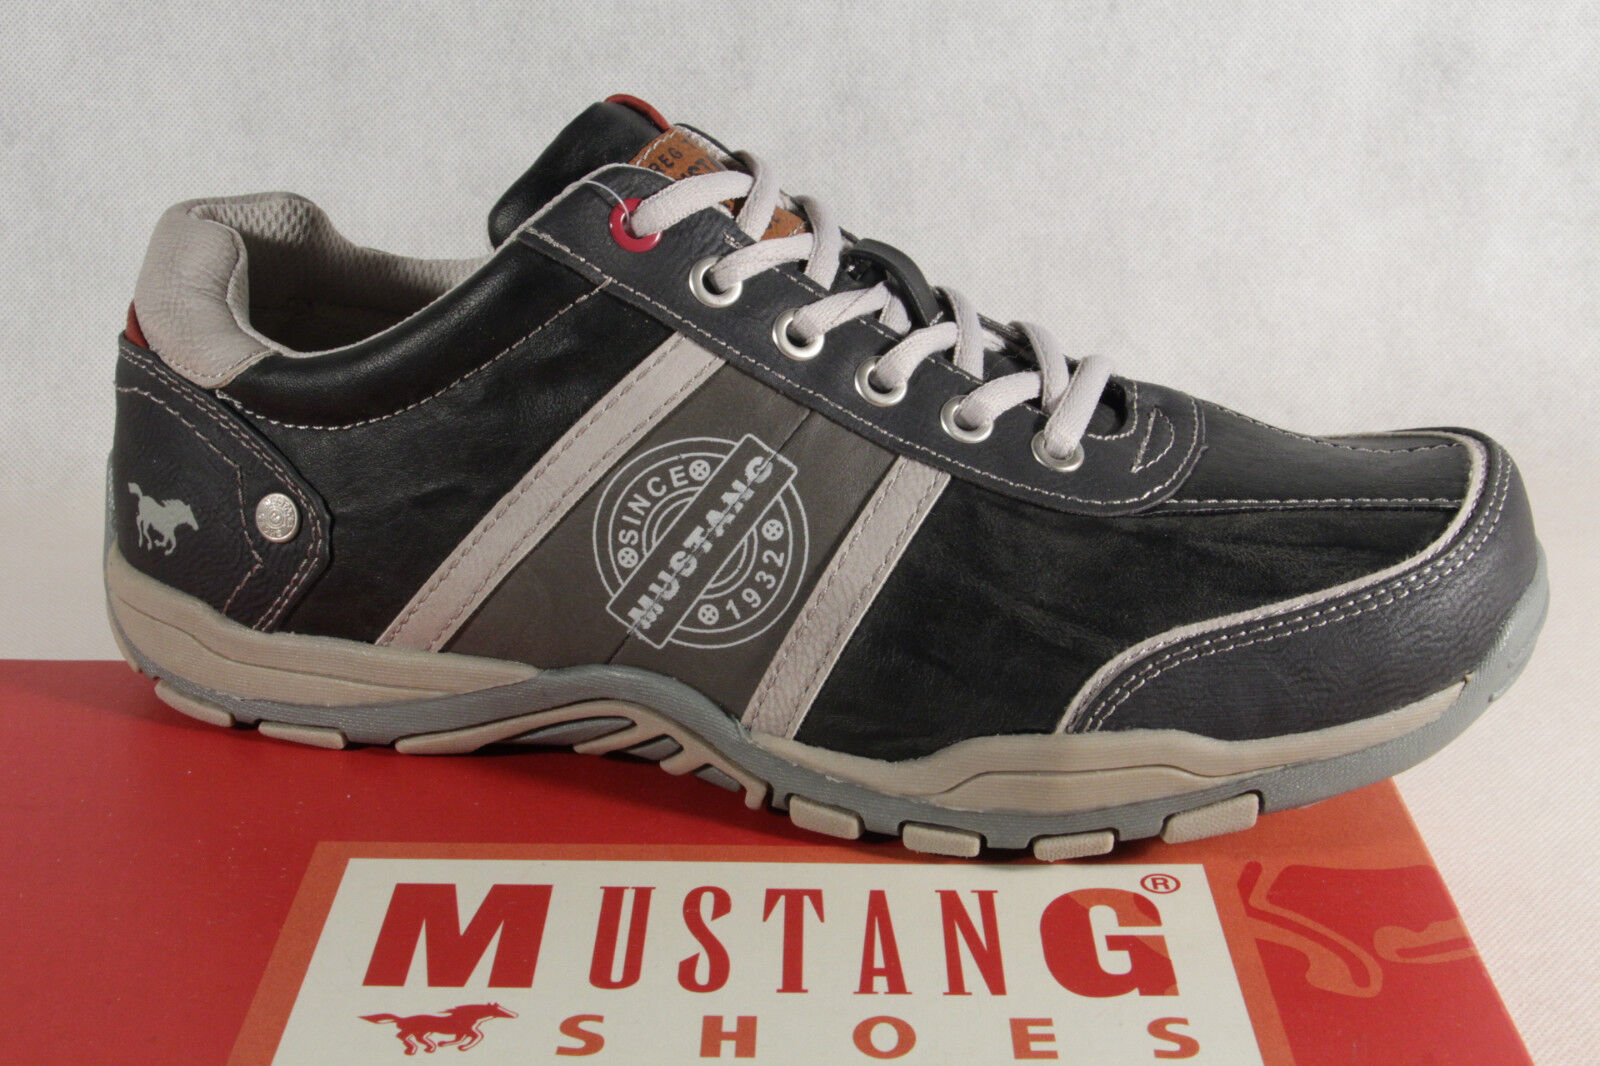 Mustang Men's Lace-Up shoes Lace up Sneakers Trainers Low 4027 Stone Grey New